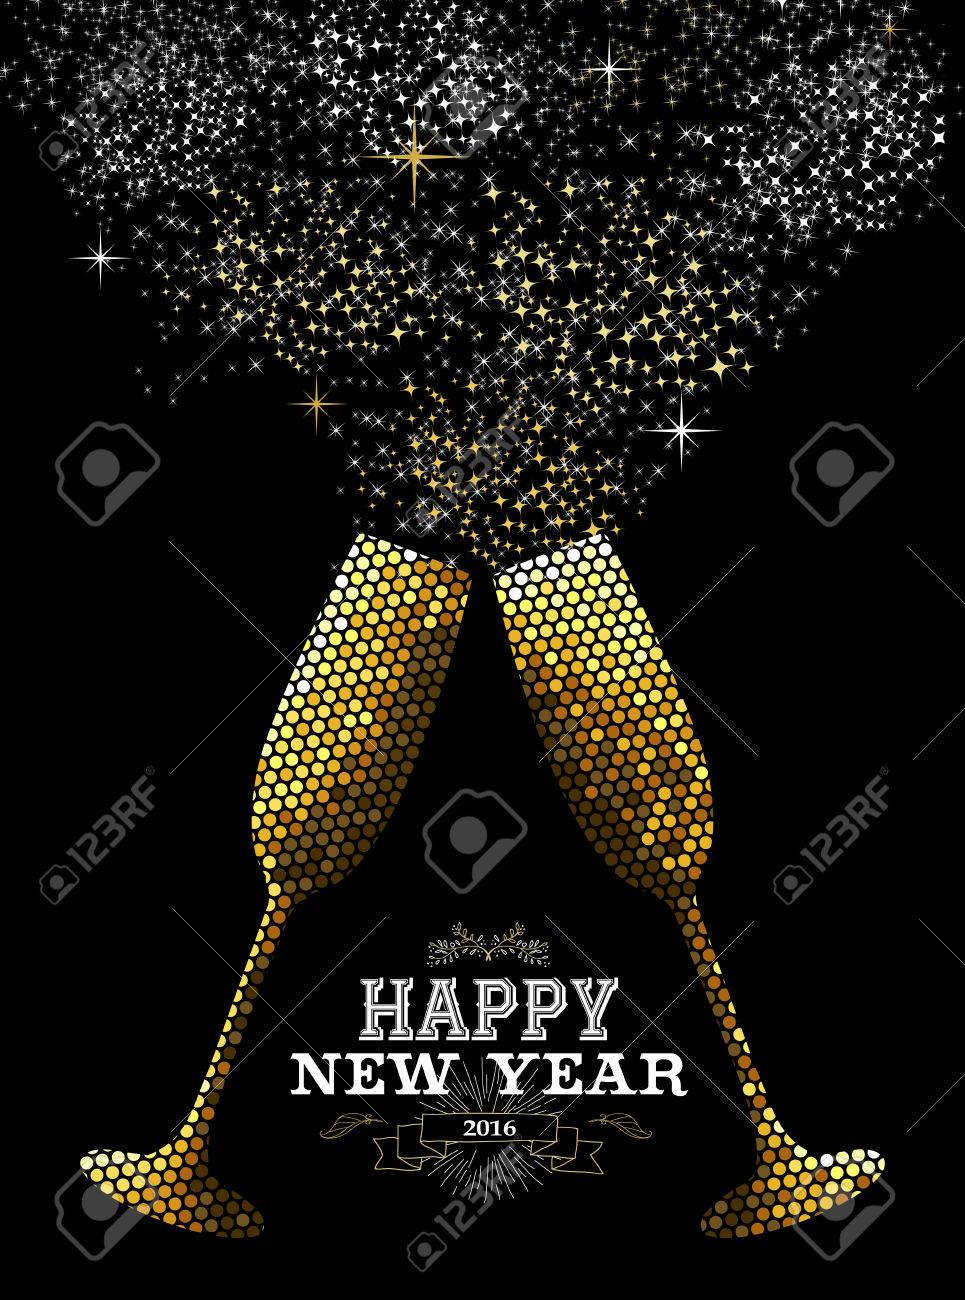 Merry Christmas Happy New Year Fancy Gold Drinking Glasses Making  Celebration Toast In Mosaic Style.